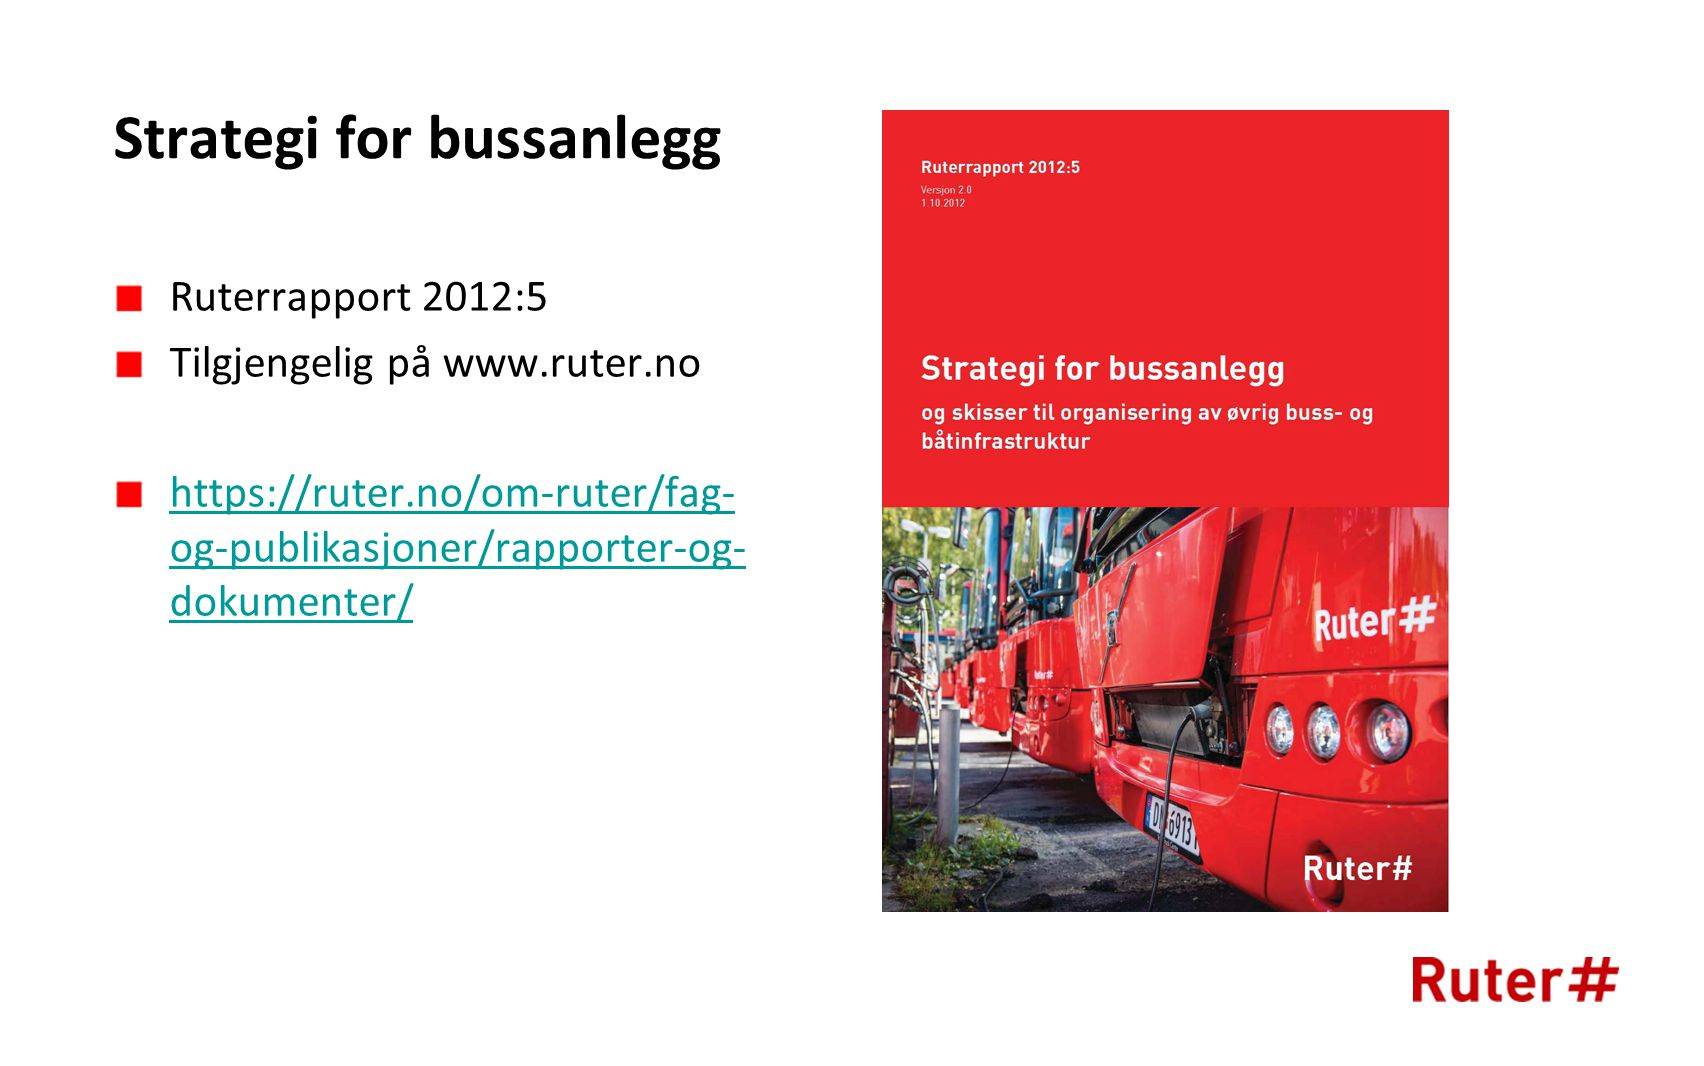 Strategi for bussanlegg